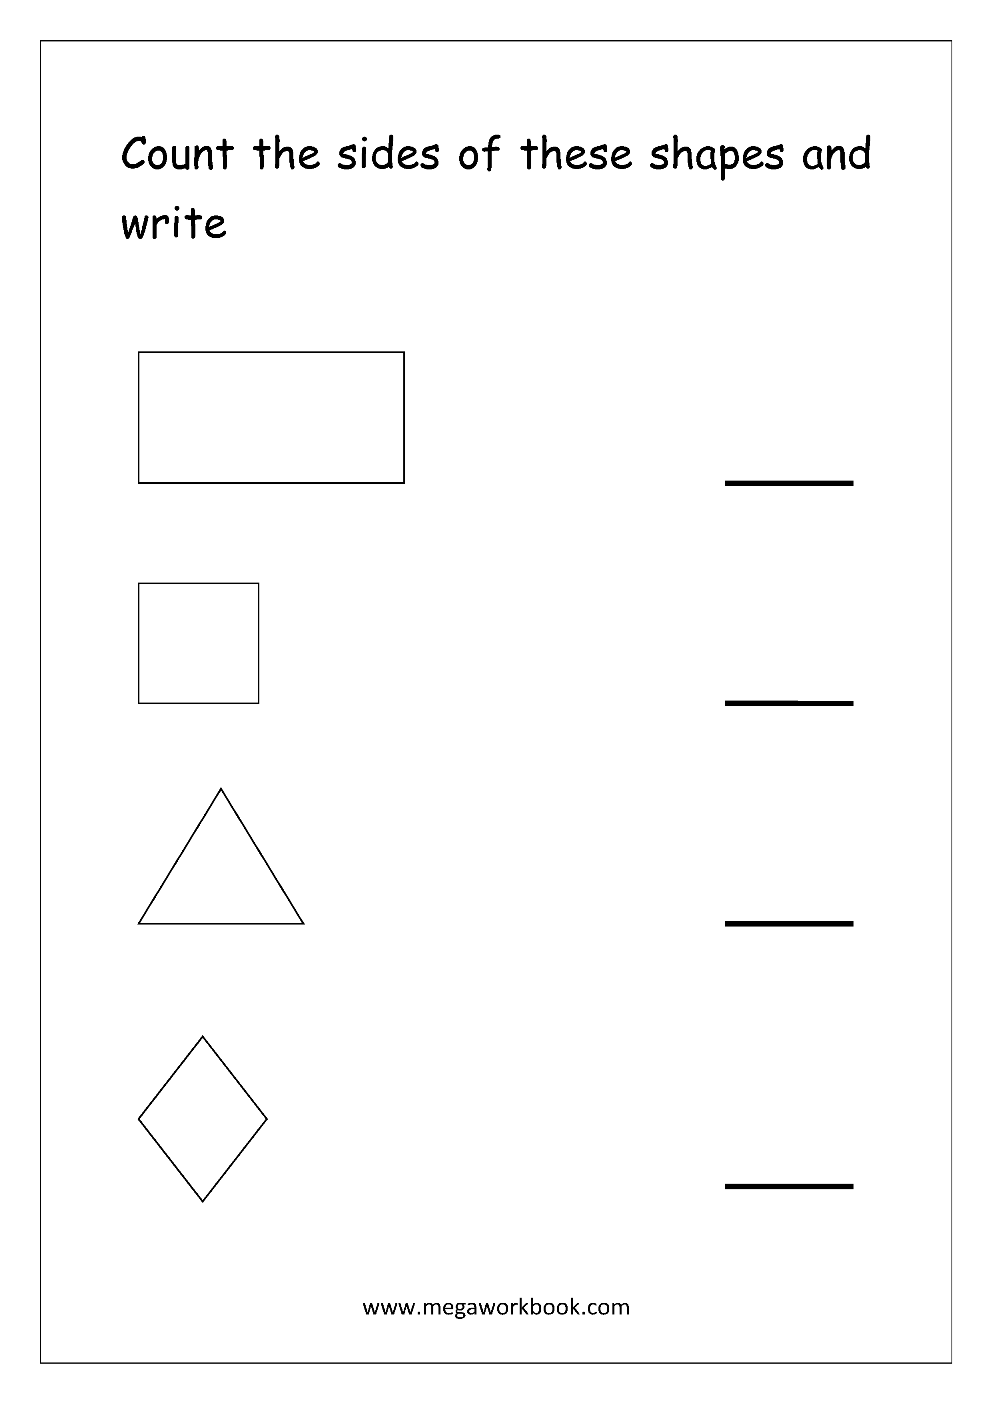 Free Shapes Worksheets - Counting The Shapes - MegaWorkbook